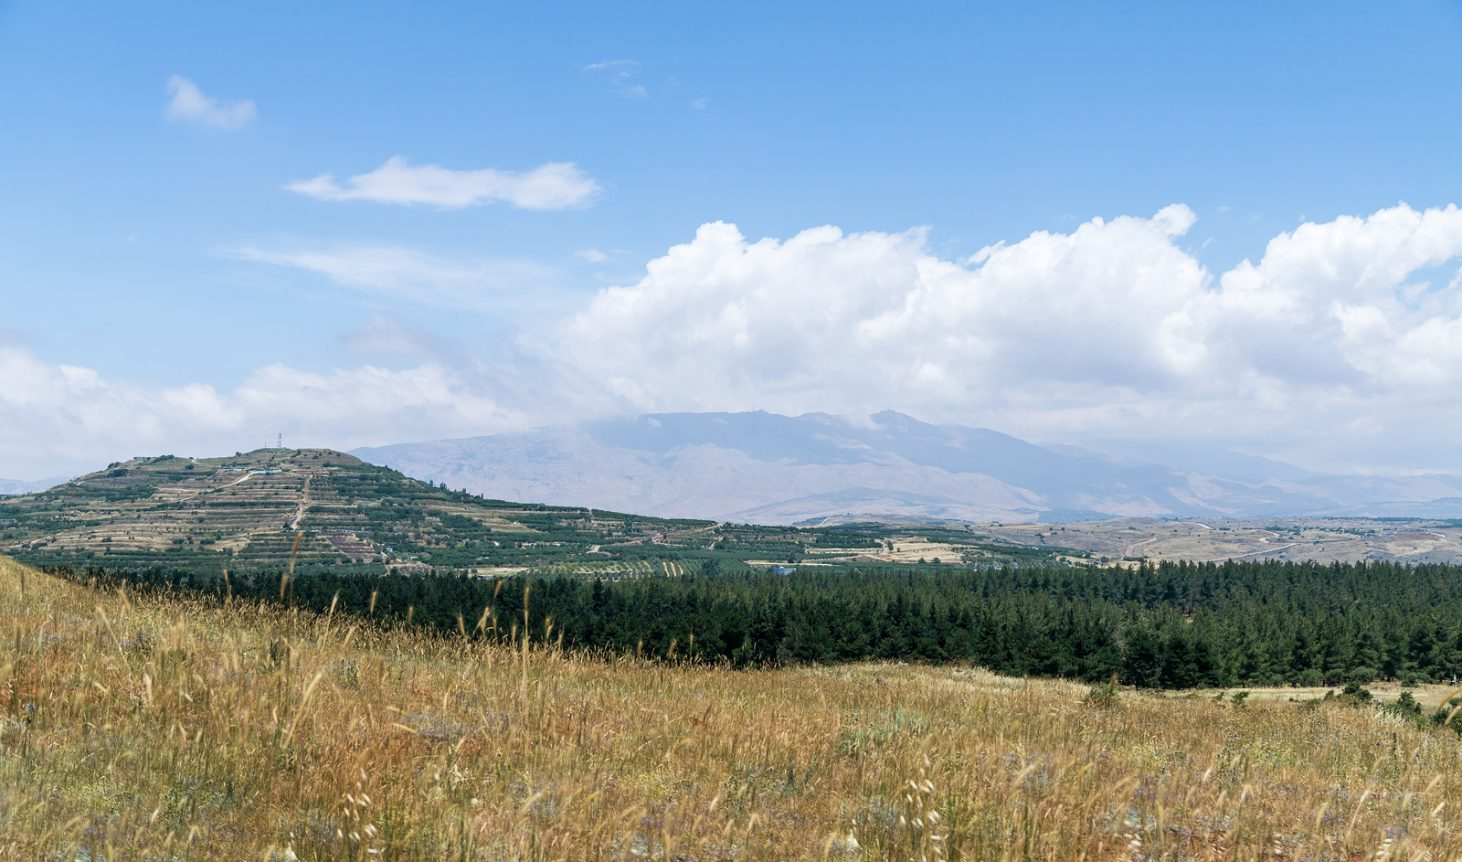 A view of the nature on the Golan Heights and mountain Hermon in Israel.